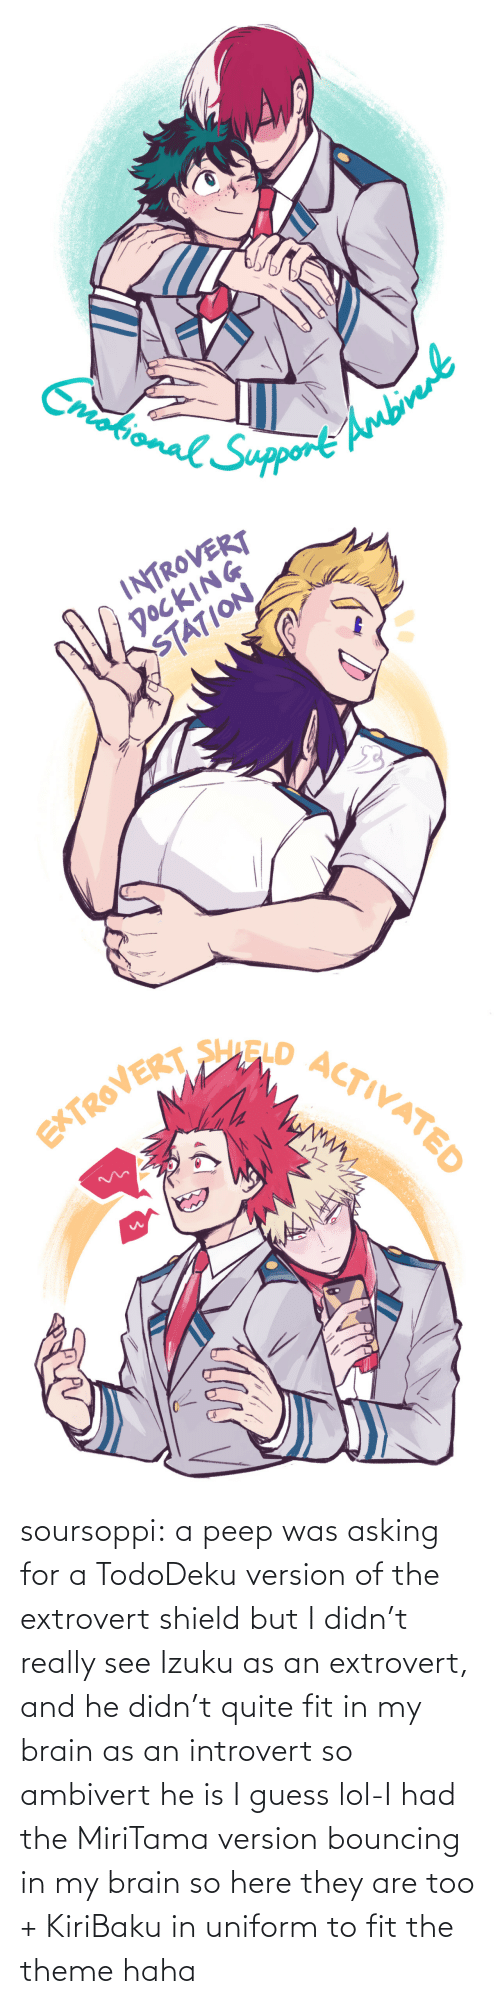 Asking: soursoppi:  a peep was asking for a TodoDeku version of the extrovert shield but I didn't really see Izuku as an extrovert, and he didn't quite fit in my brain as an introvert so ambivert he is I guess lol-I had the MiriTama version bouncing in my brain so here they are too + KiriBaku in uniform to fit the theme haha